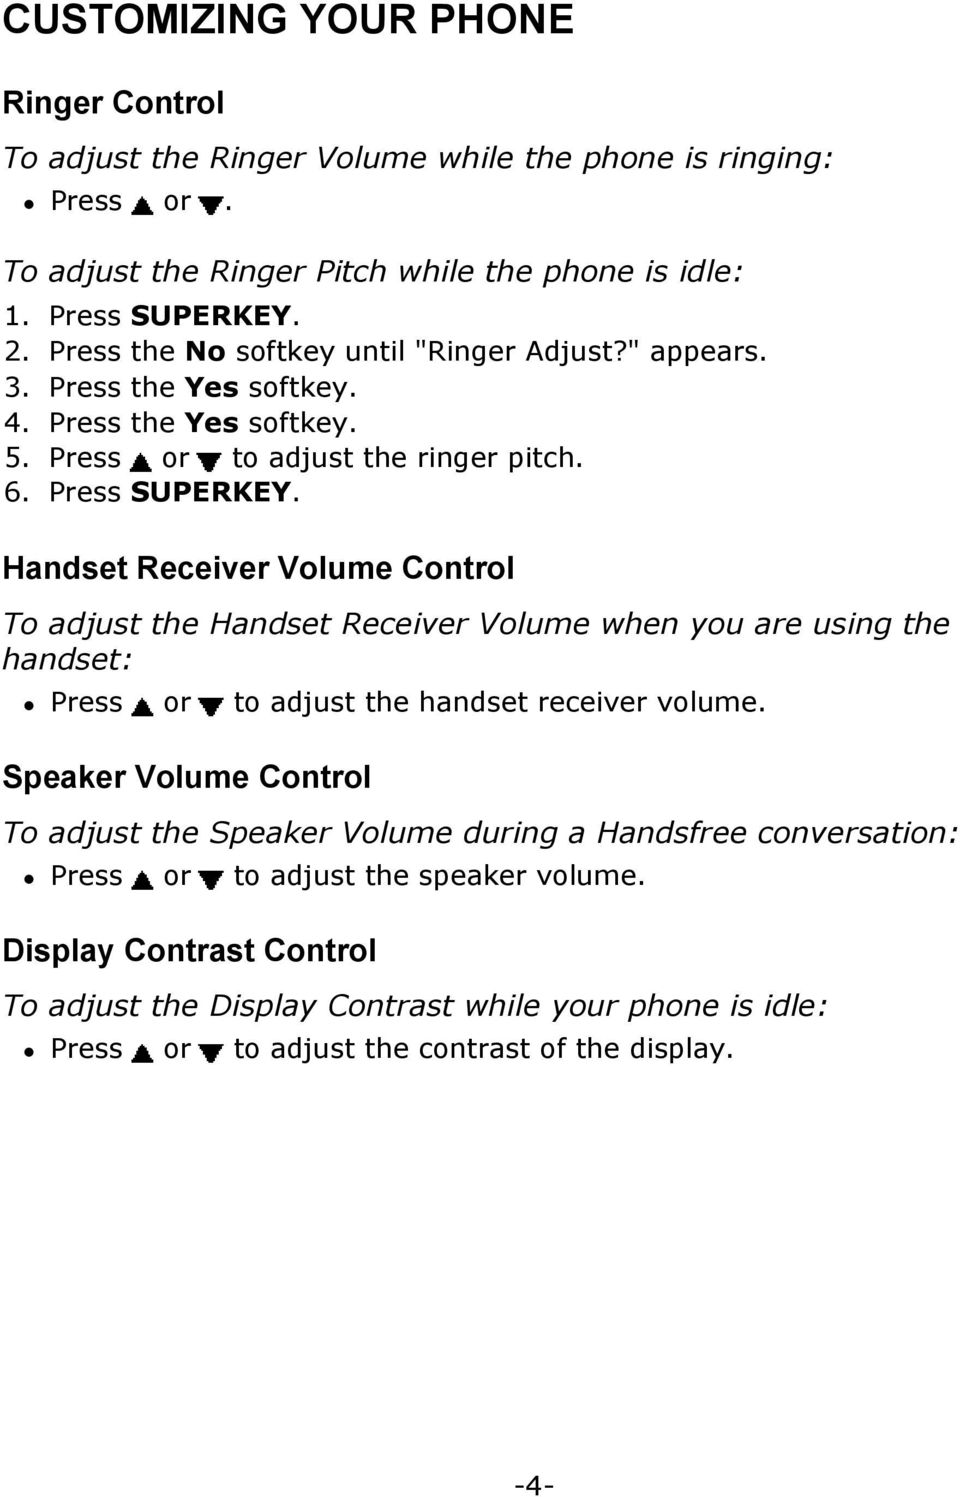 Handset Receiver Volume Control To adjust the Handset Receiver Volume when you are using the handset:! Press or to adjust the handset receiver volume.